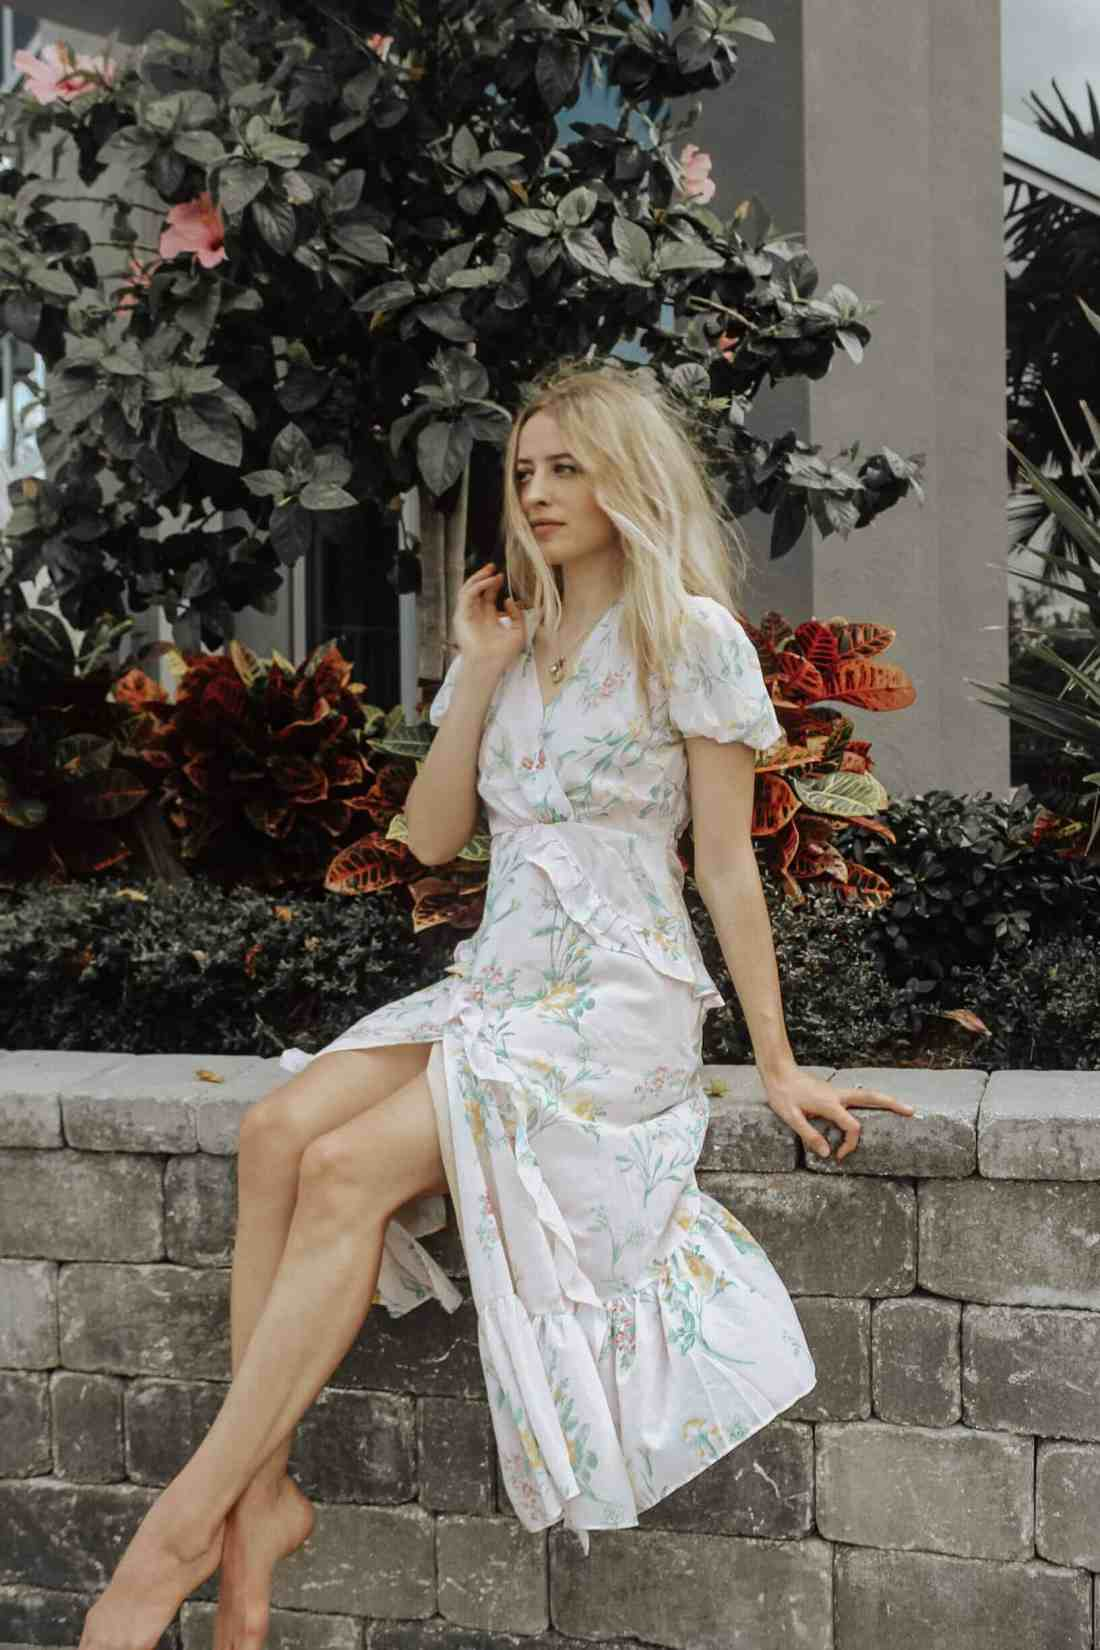 Spring Trends for 2019 - Clothing trends to keep an eye out for in Spring 2019! Featuring trends such as hair accessories, square necklines, lavender & more